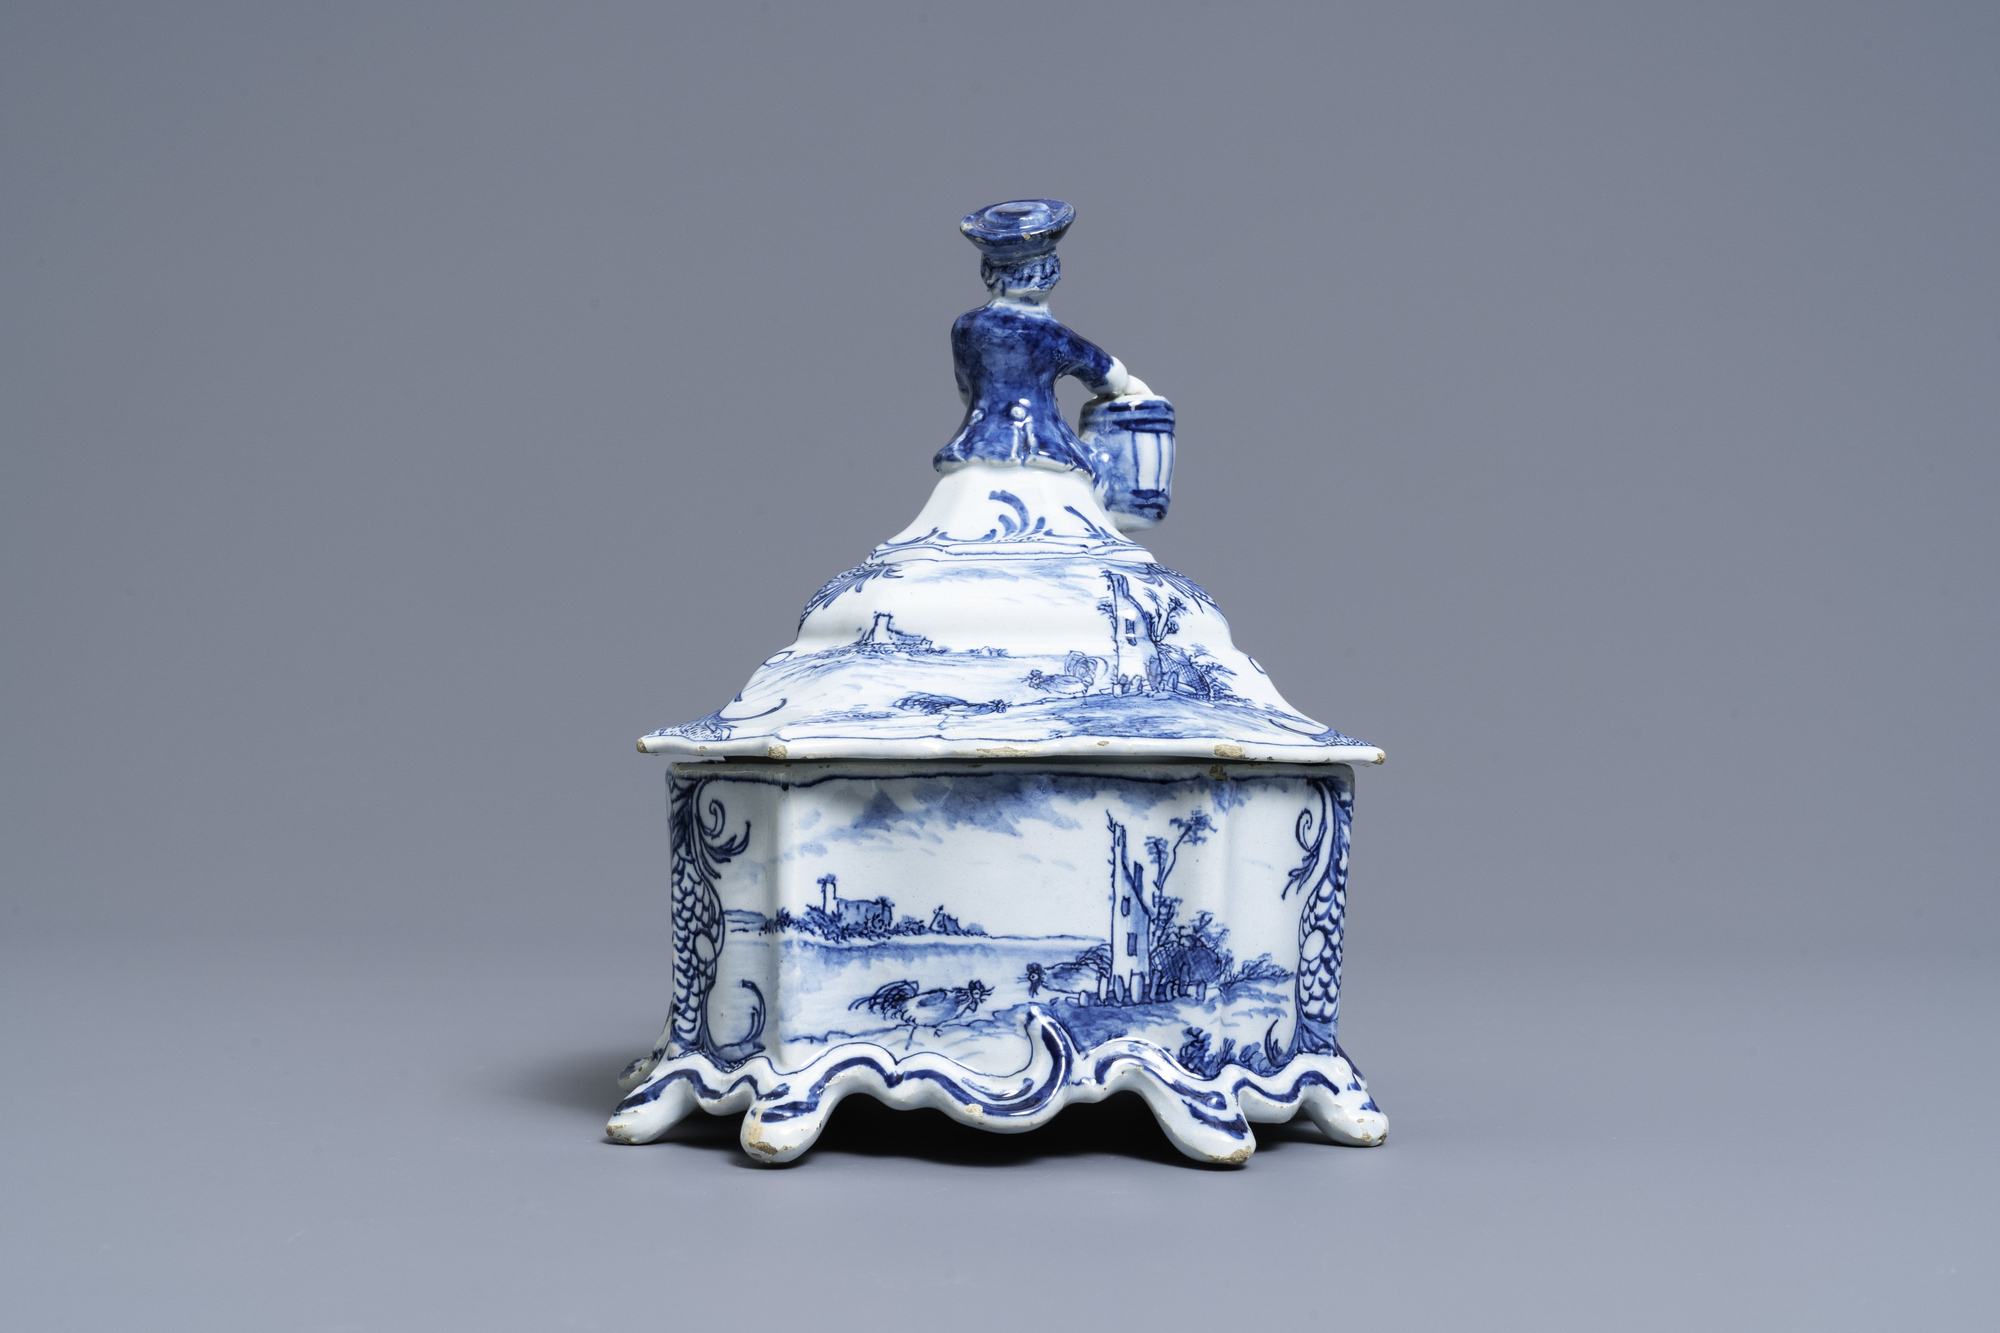 A Dutch Delft blue and white tobacco box and cover with a boy near a barrel, 18th C. - Image 3 of 7